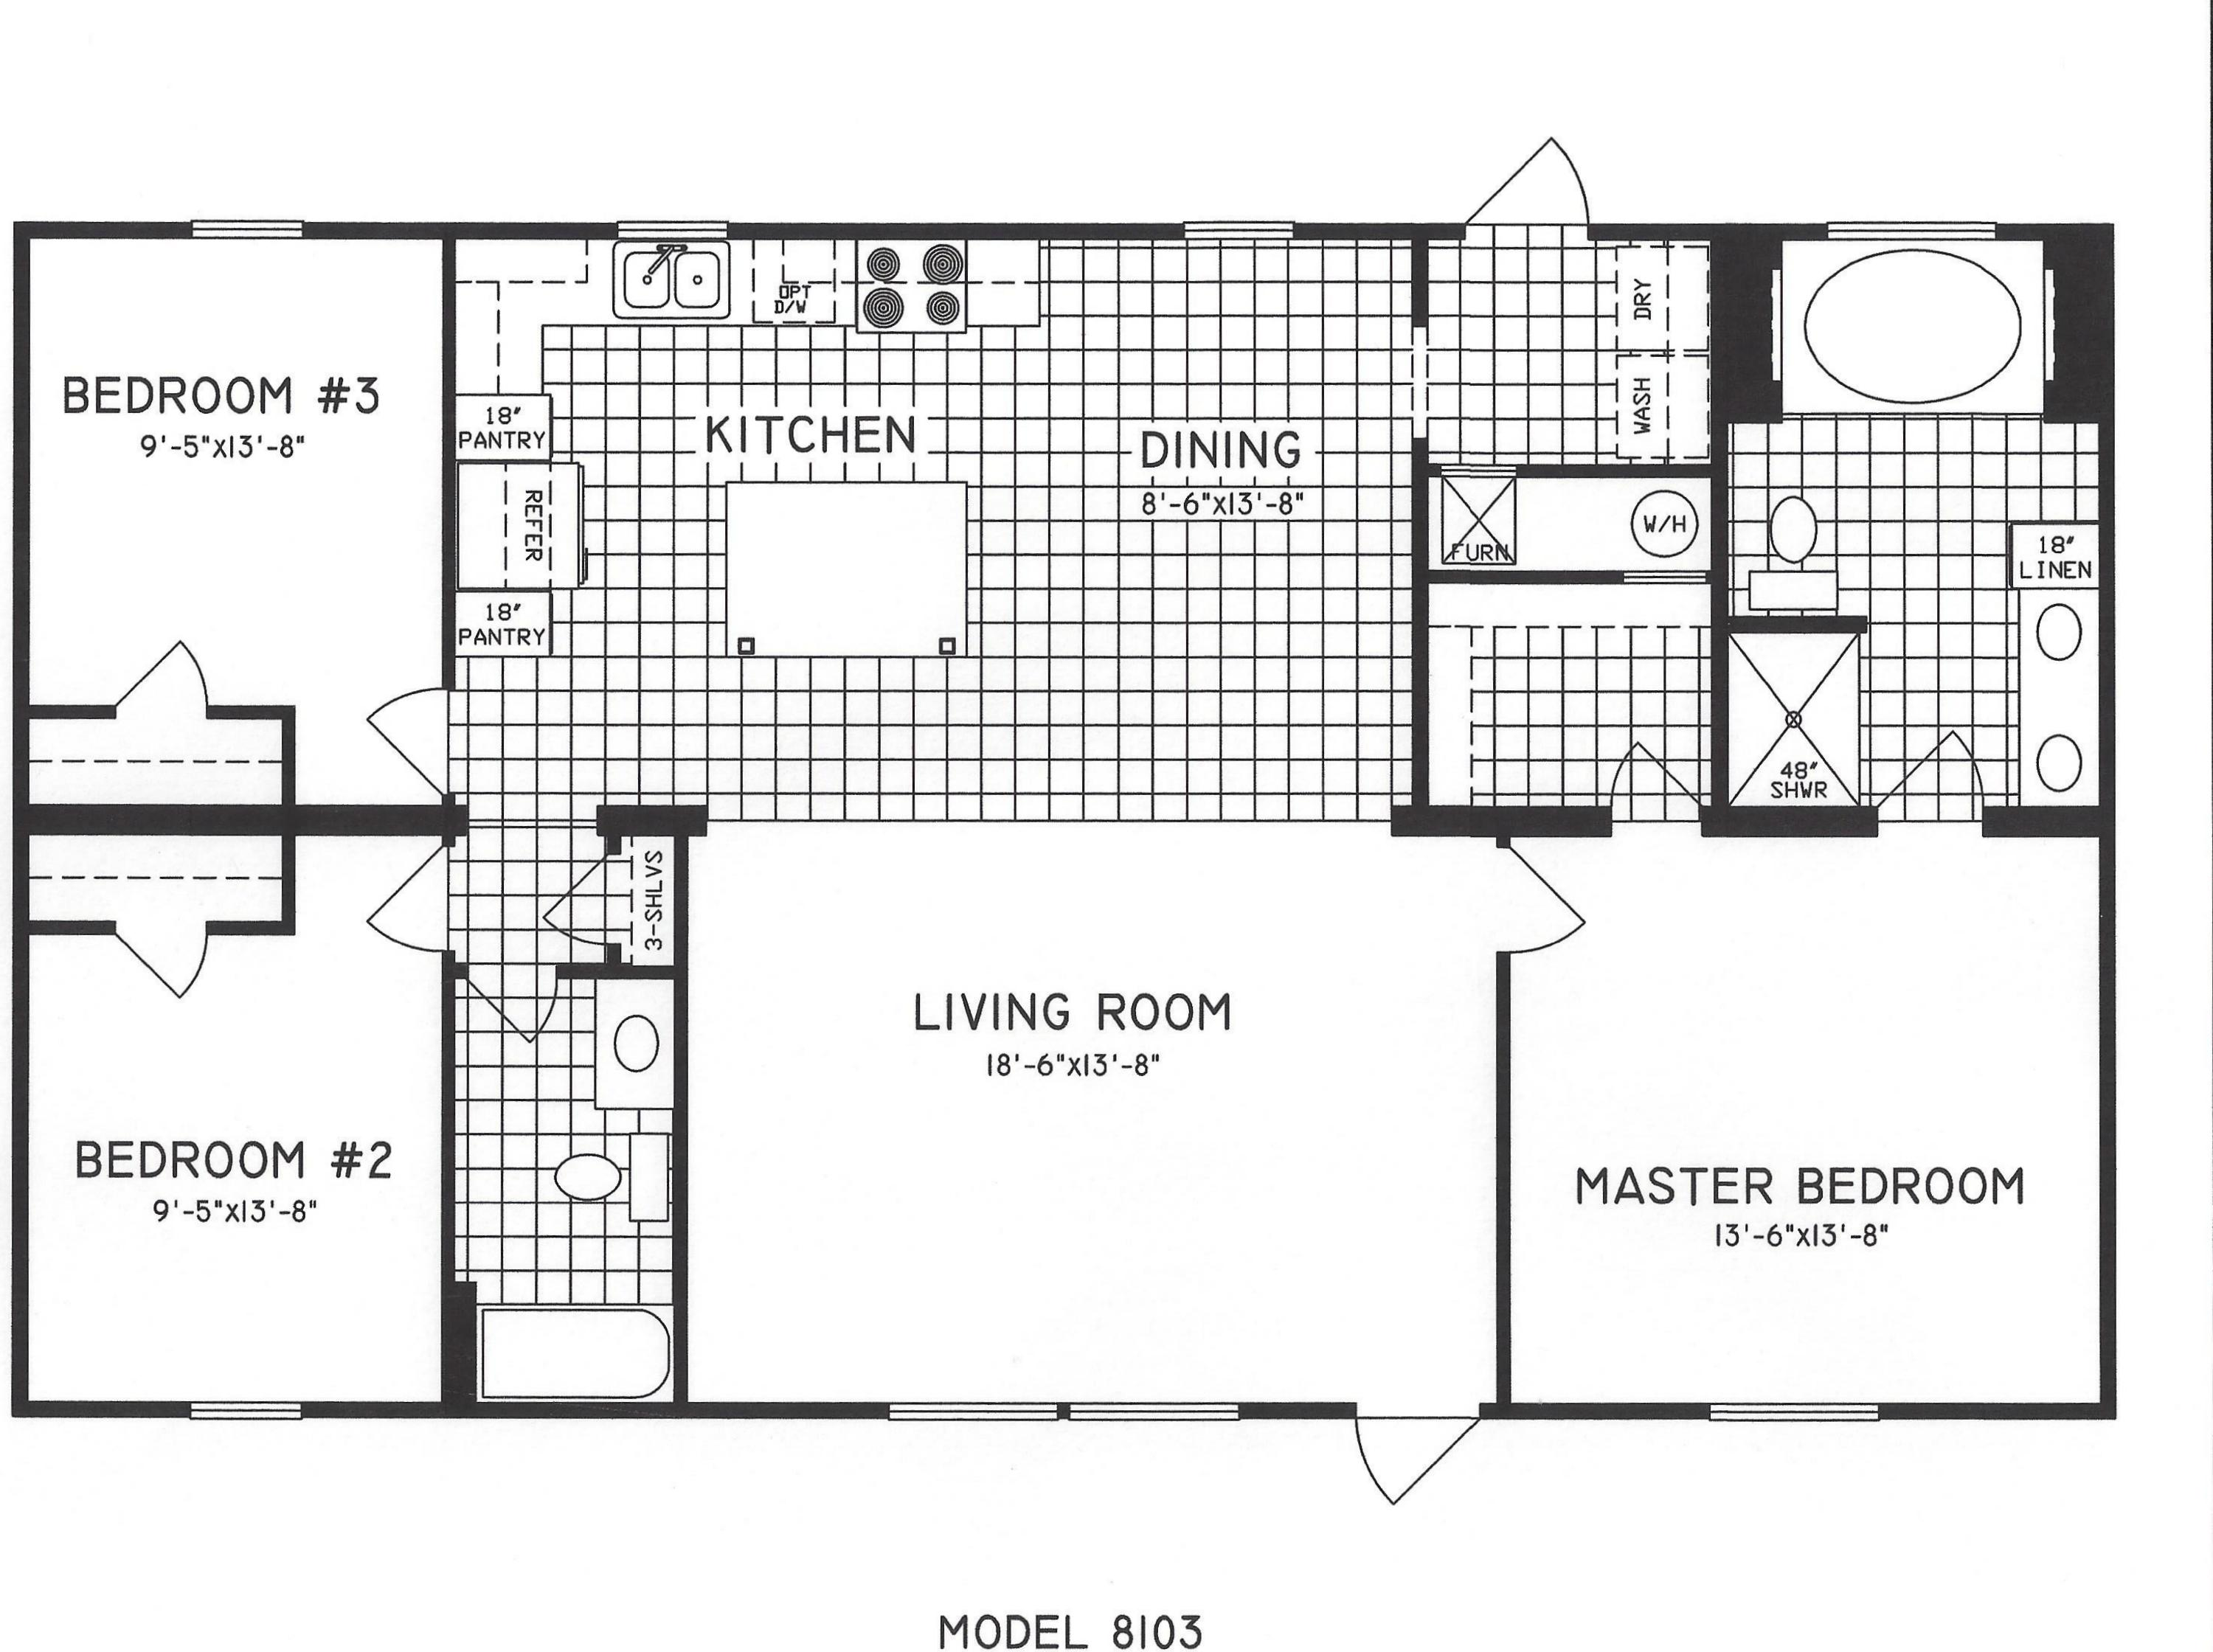 3 bedroom floor plan c 8103 hawks homes manufactured for 3 bedroom 2 bath double wide floor plans